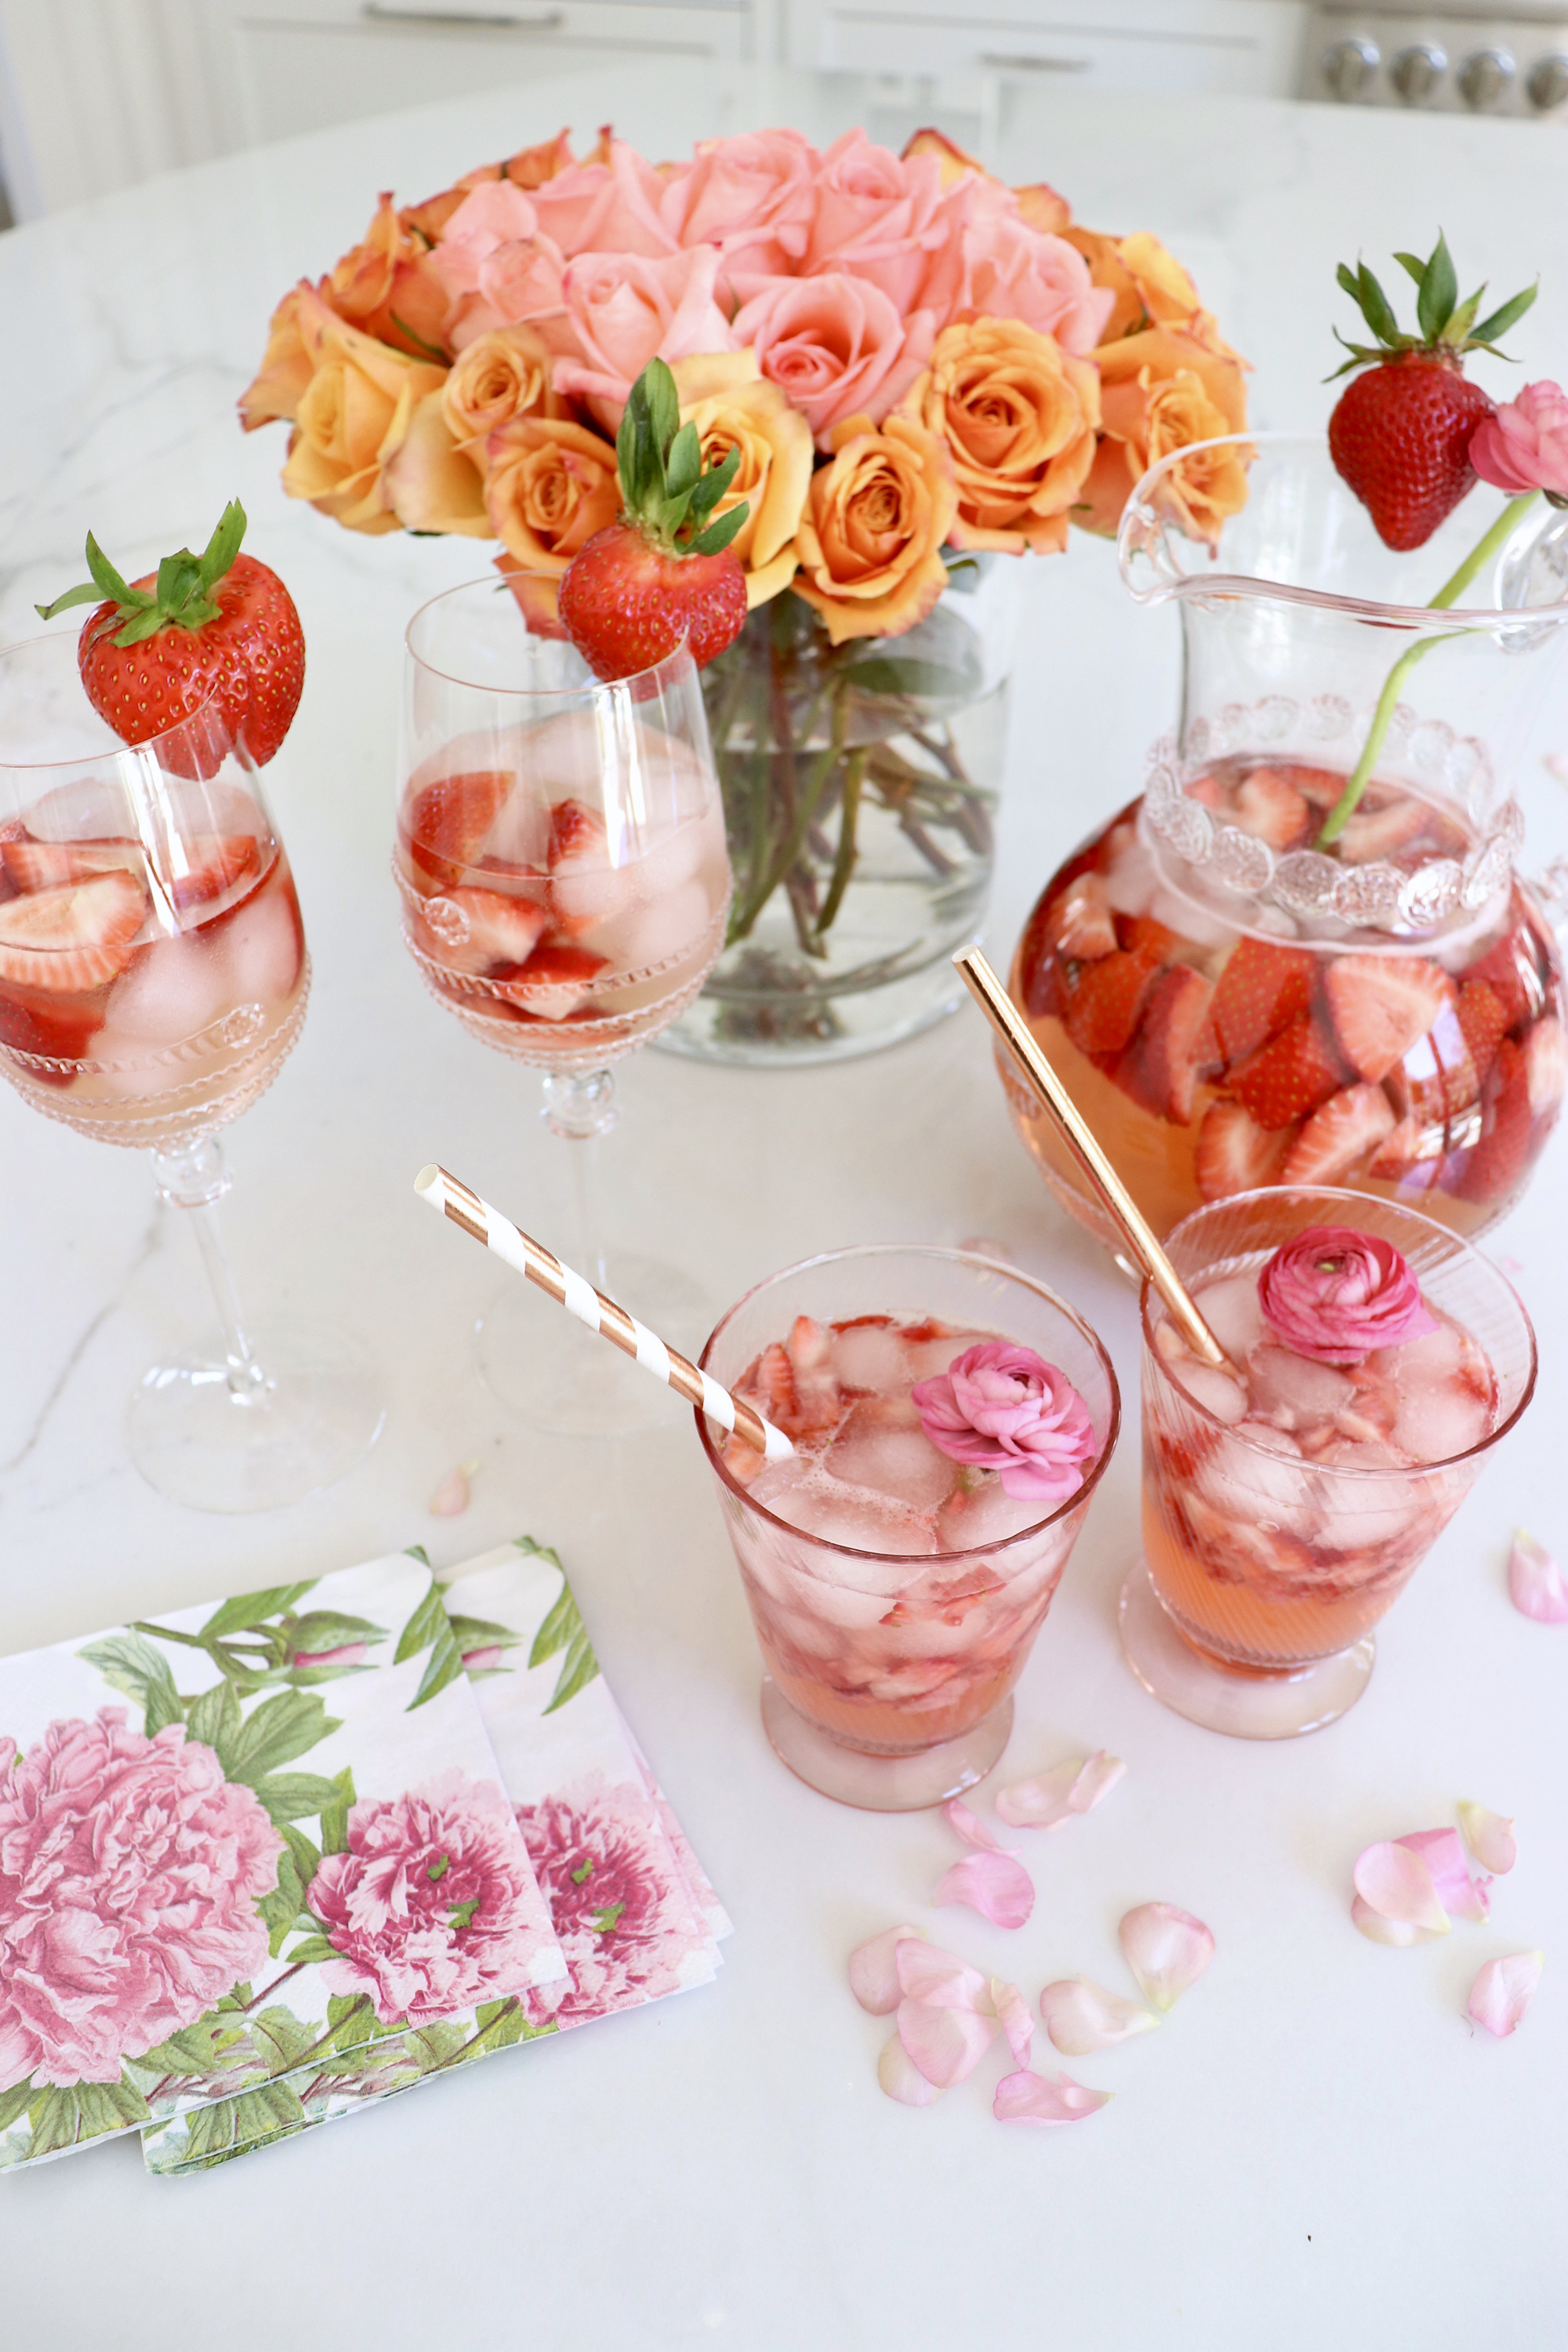 Peach Strawberry Rosé Sangria Recipe (+ Non-Alcoholic Lemonade Version!)